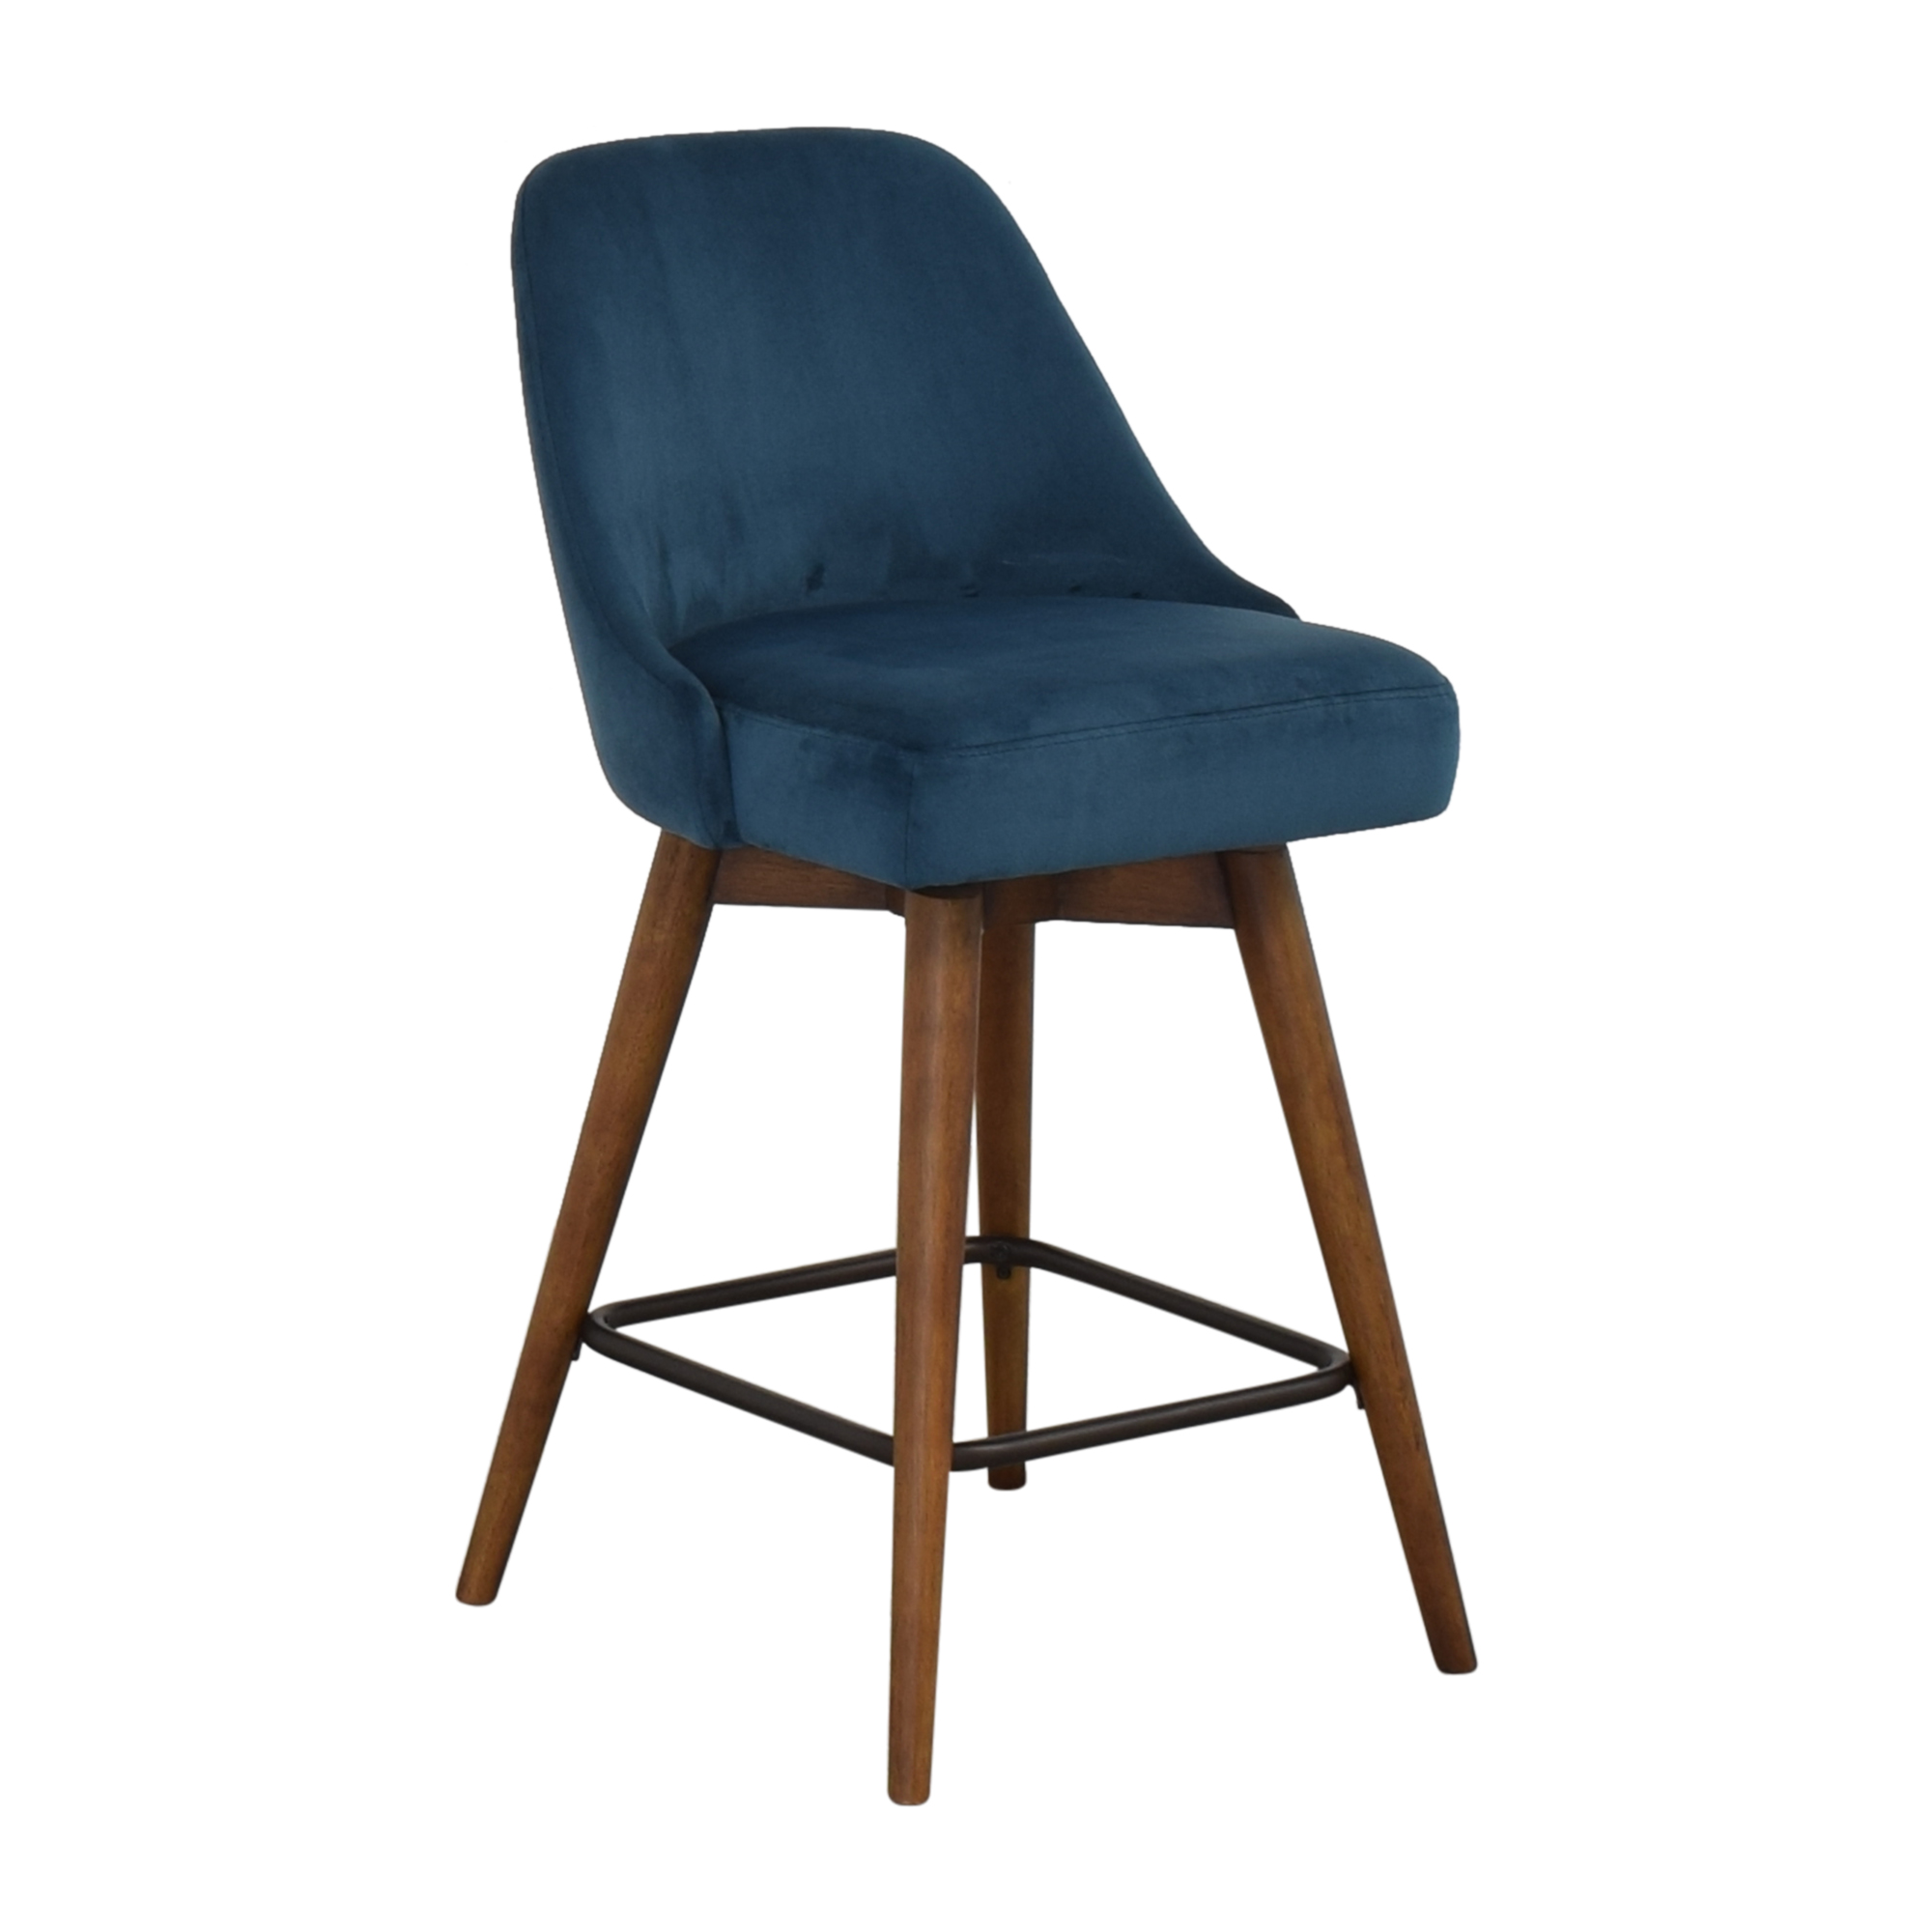 West Elm West Elm Mid-Century Upholstered Swivel Counter Stool Chairs